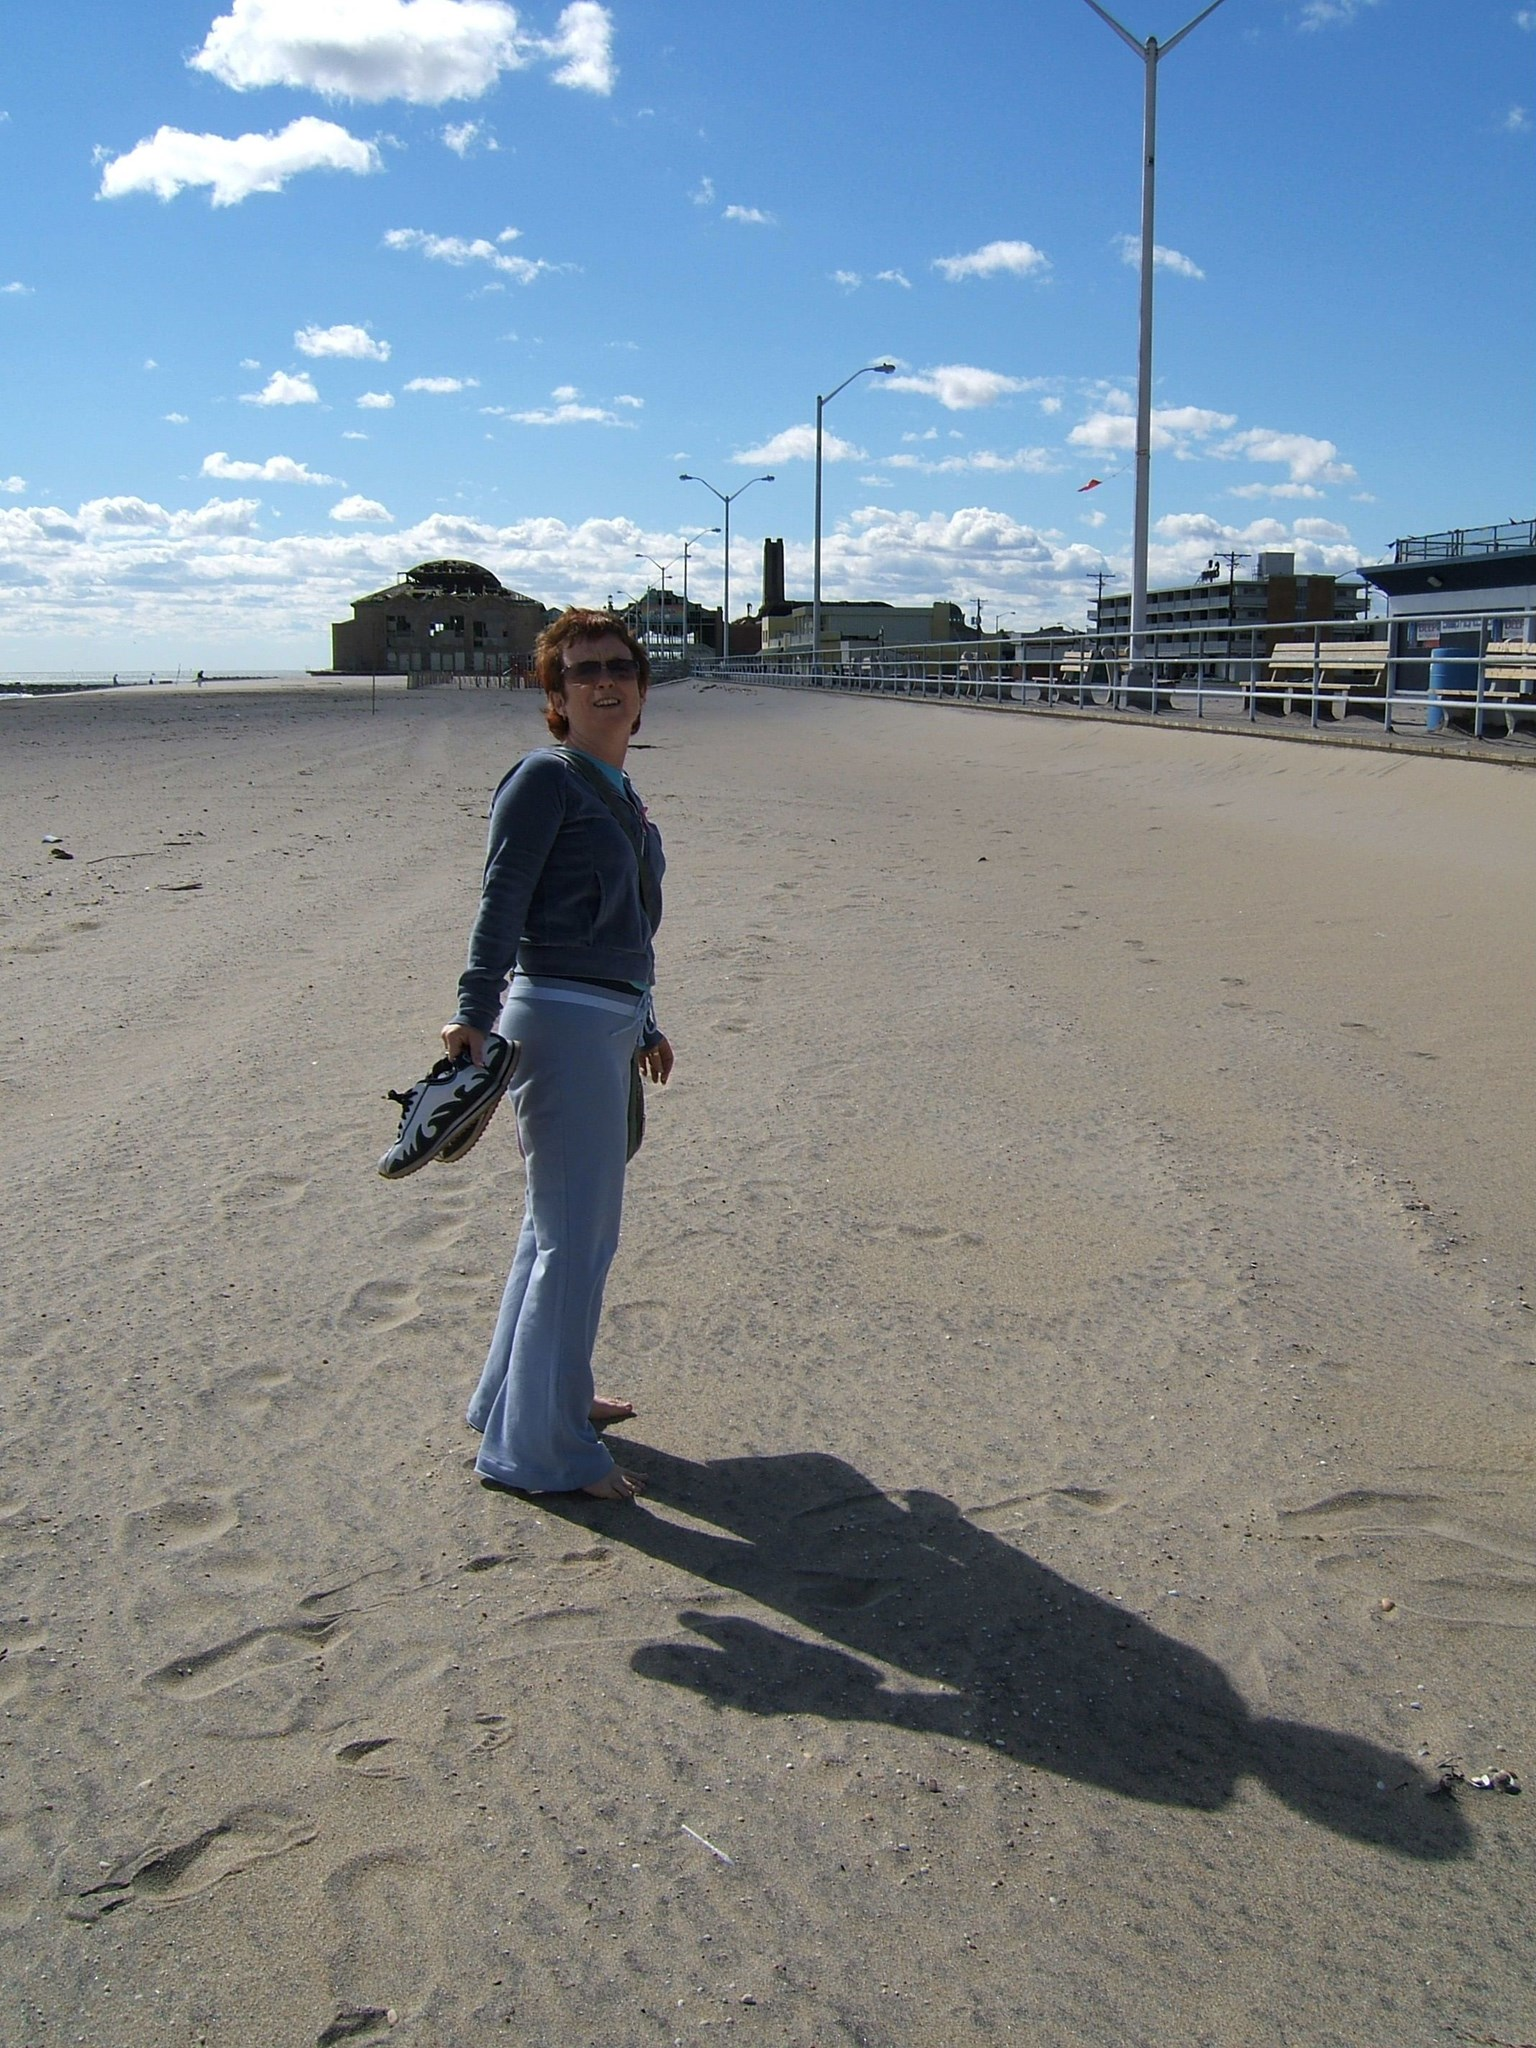 Carol on The Beach   Asbury Park New Jersey   October 2005